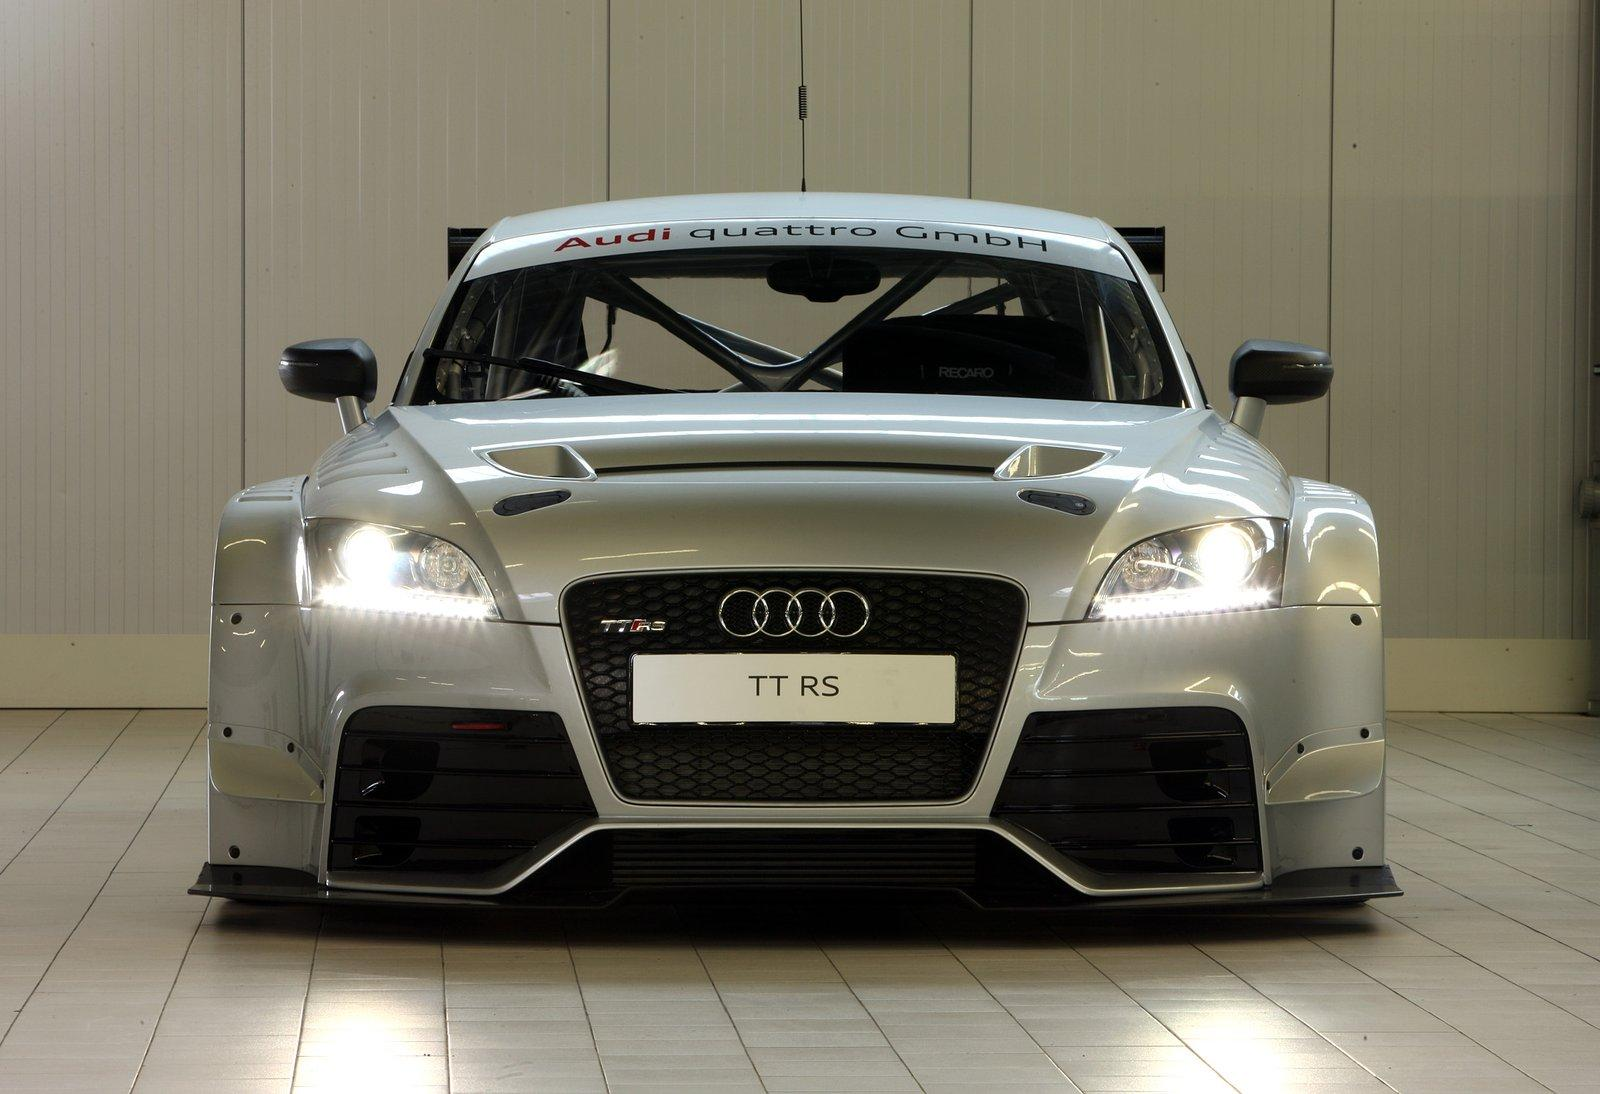 2012 Audi TT RS race edition 3 2012 Audi TT RS race edition available on sale